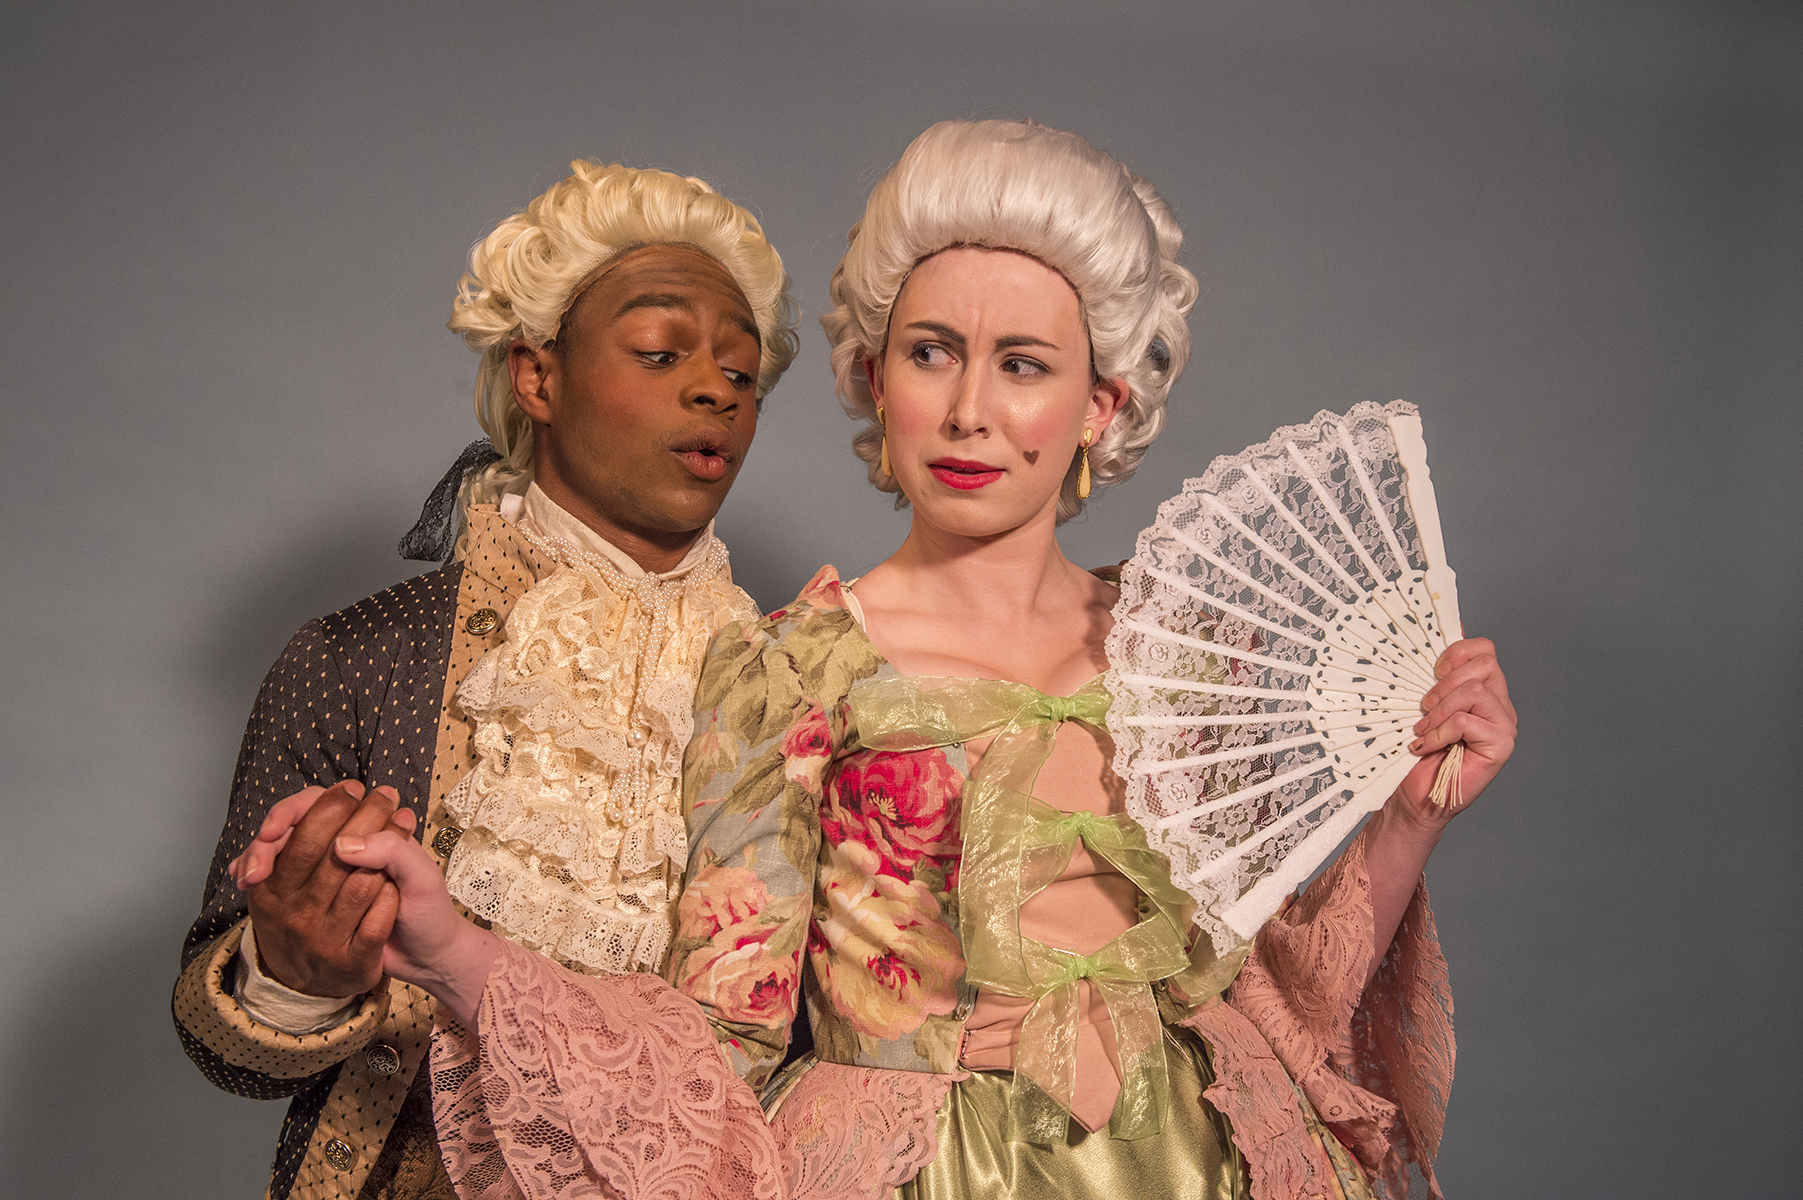 Tartuffe and Elmire